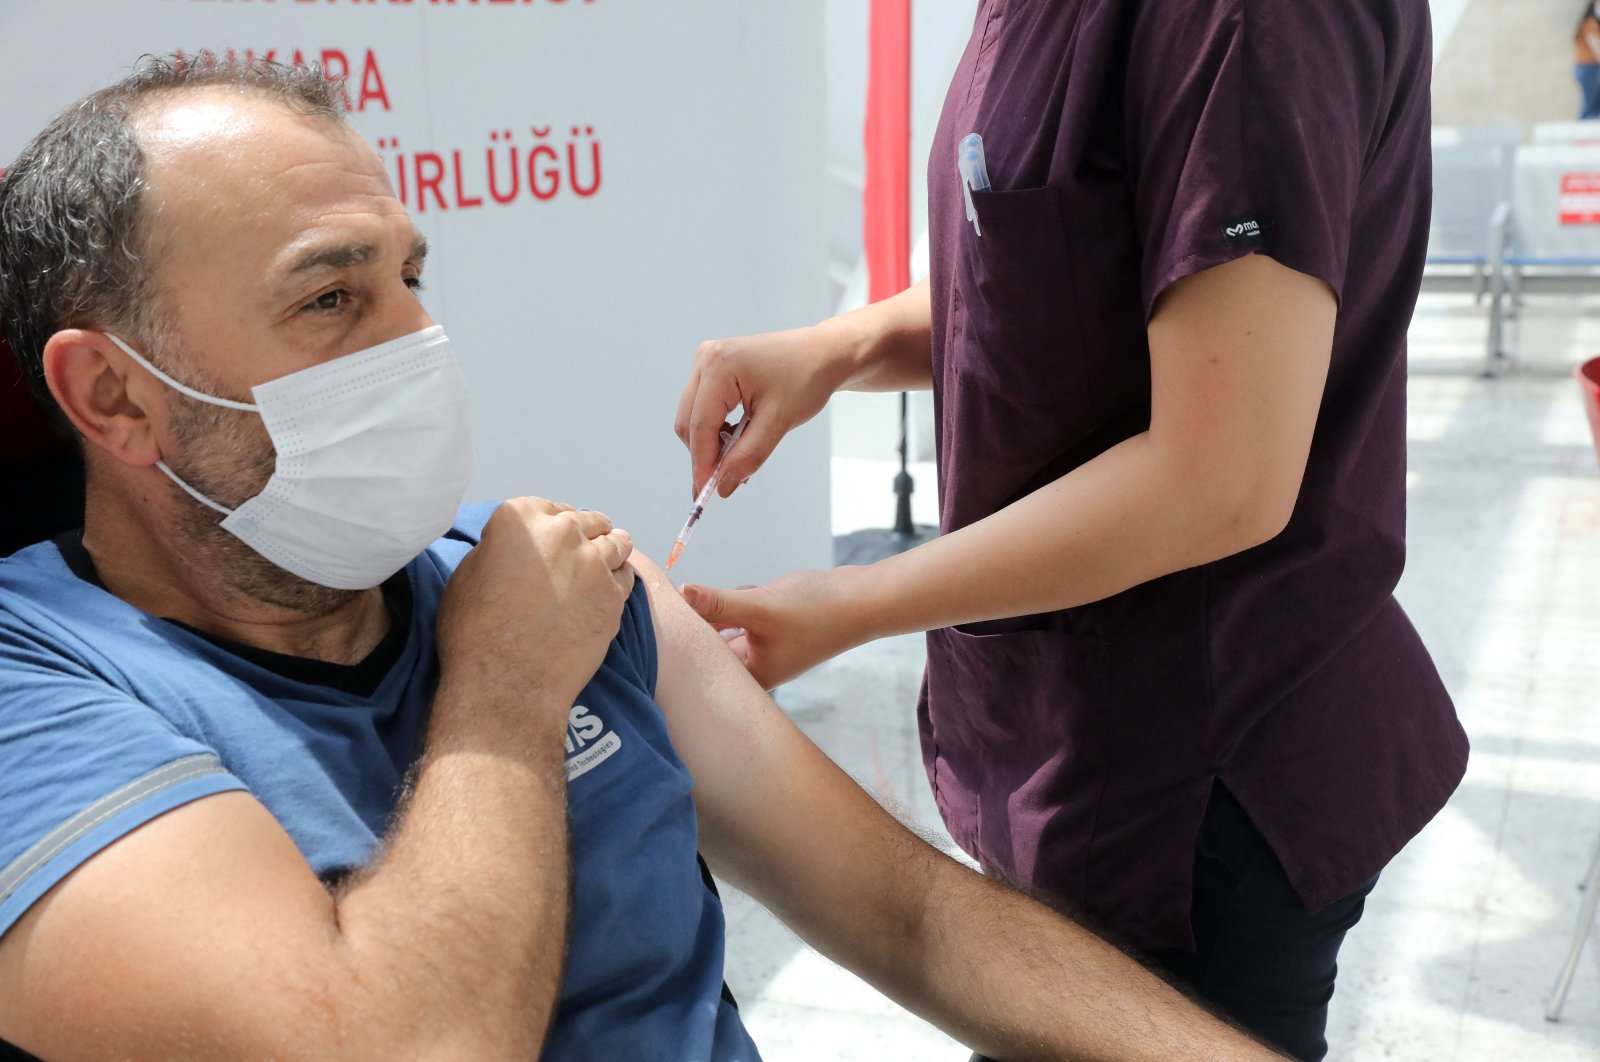 A man receives a dose of a COVID-19 vaccine at a vaccination center, set up at Ankara High-Speed Train Station, Ankara, Turkey, on June 28, 2021. (AFP)